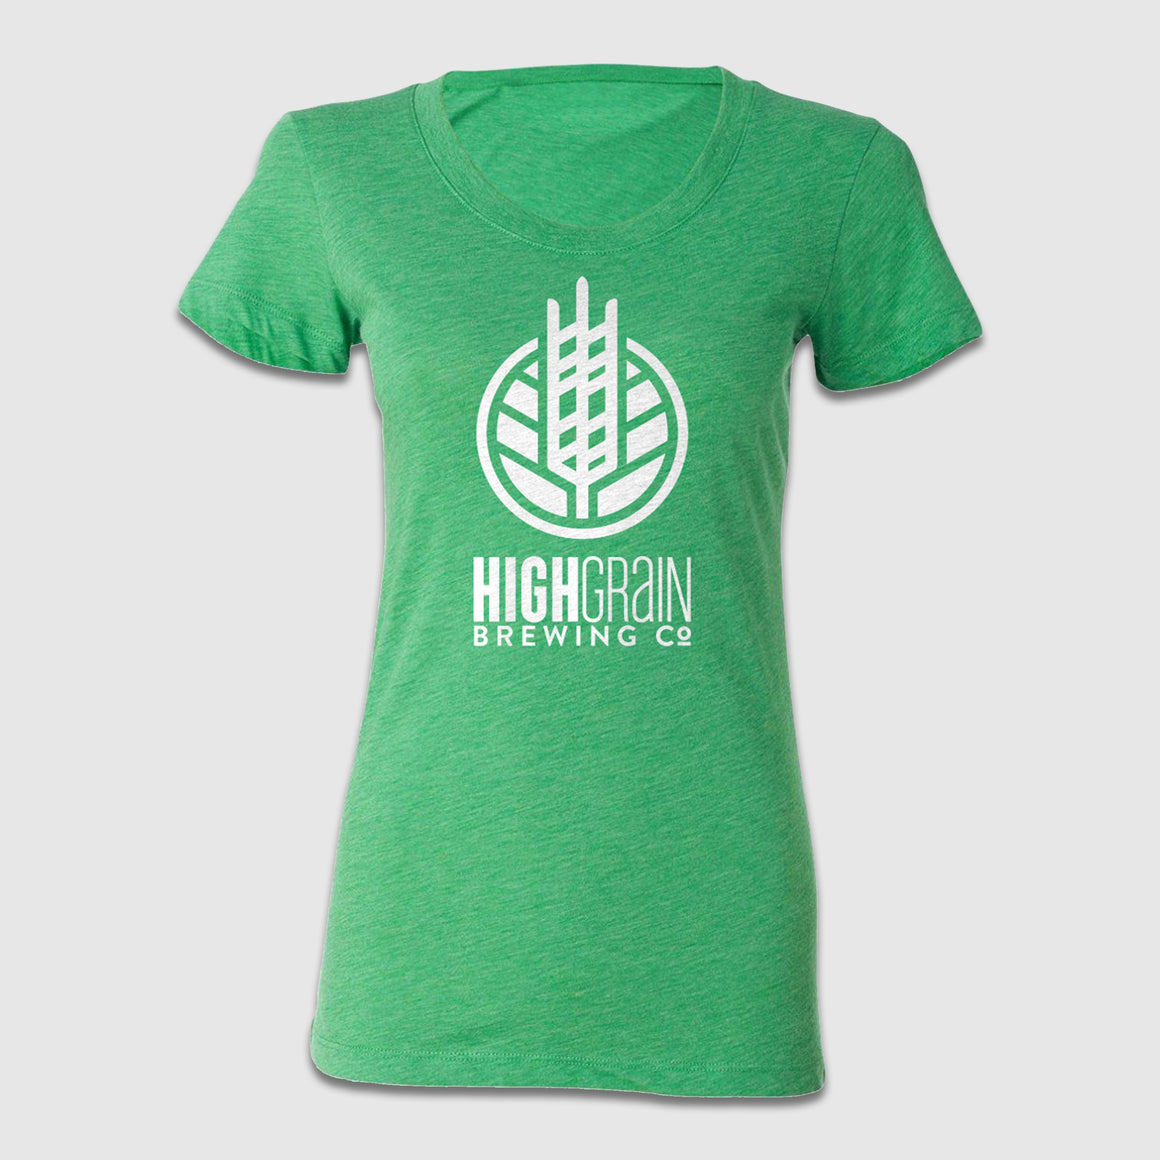 Women's Scoop Neck High Grain Full Emblem Woodmark Tees - Cincy Shirts